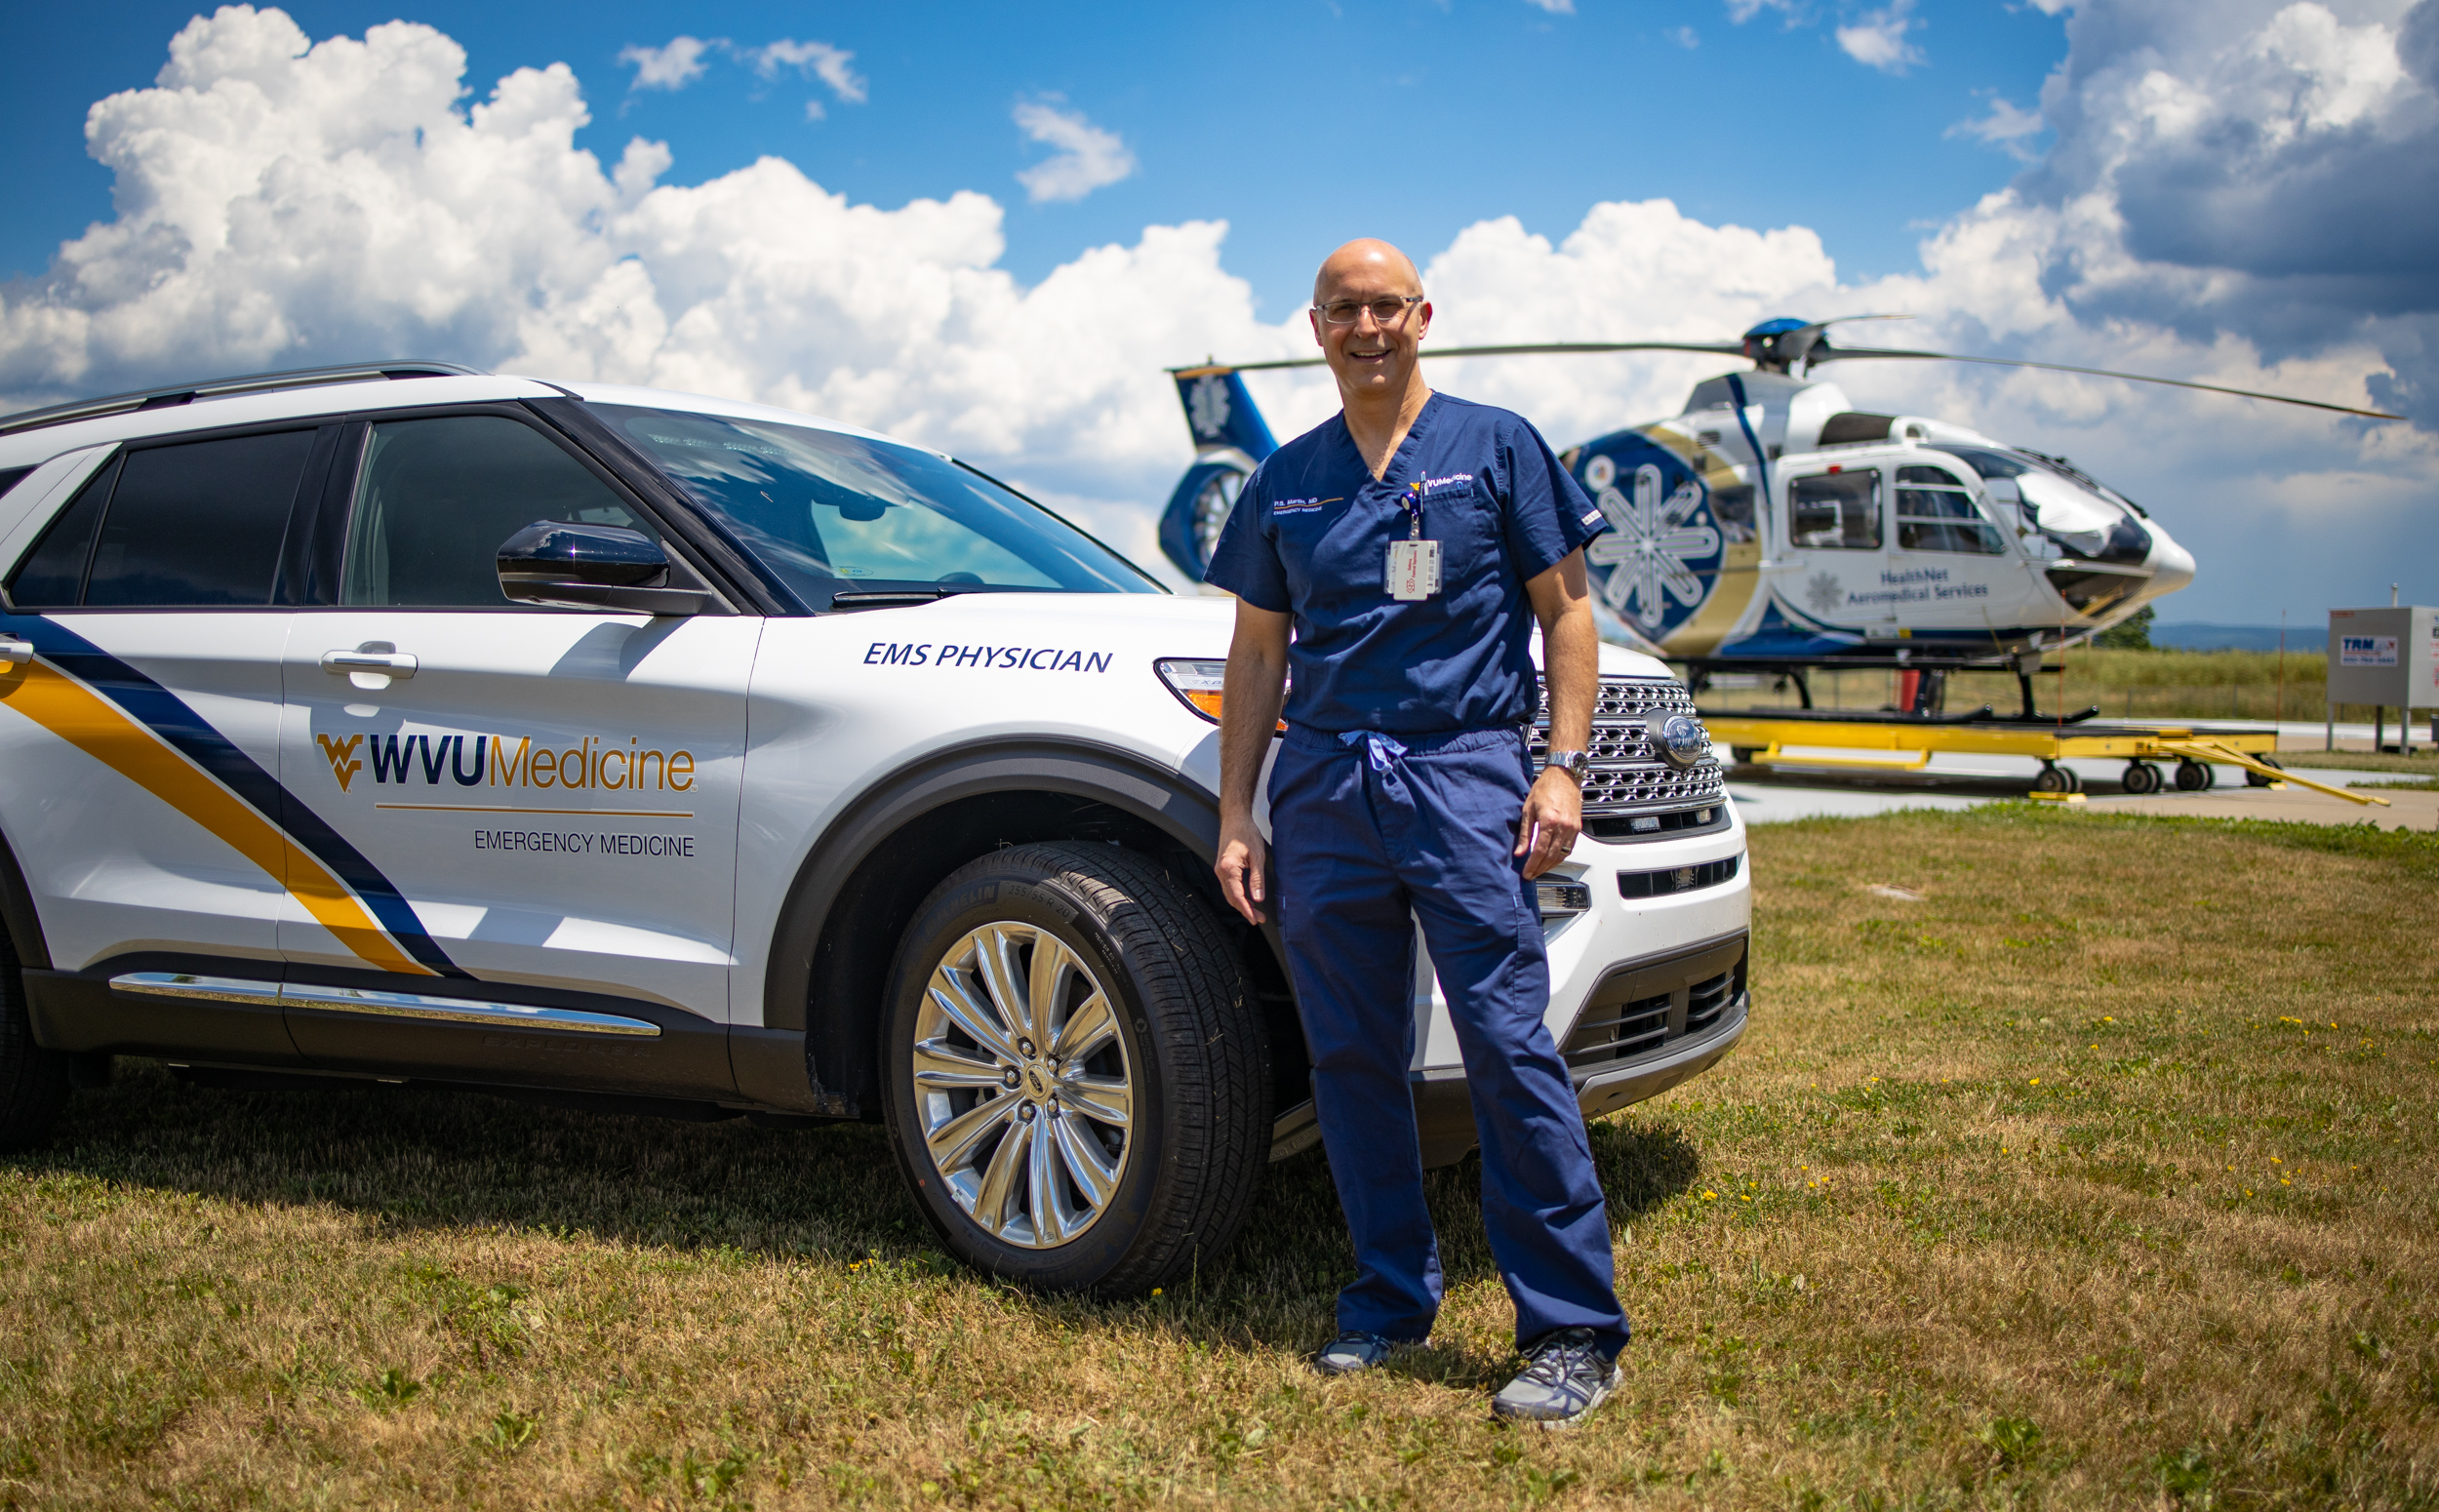 Dr. P.S. Martin in front of quick response vehicle & helicopter